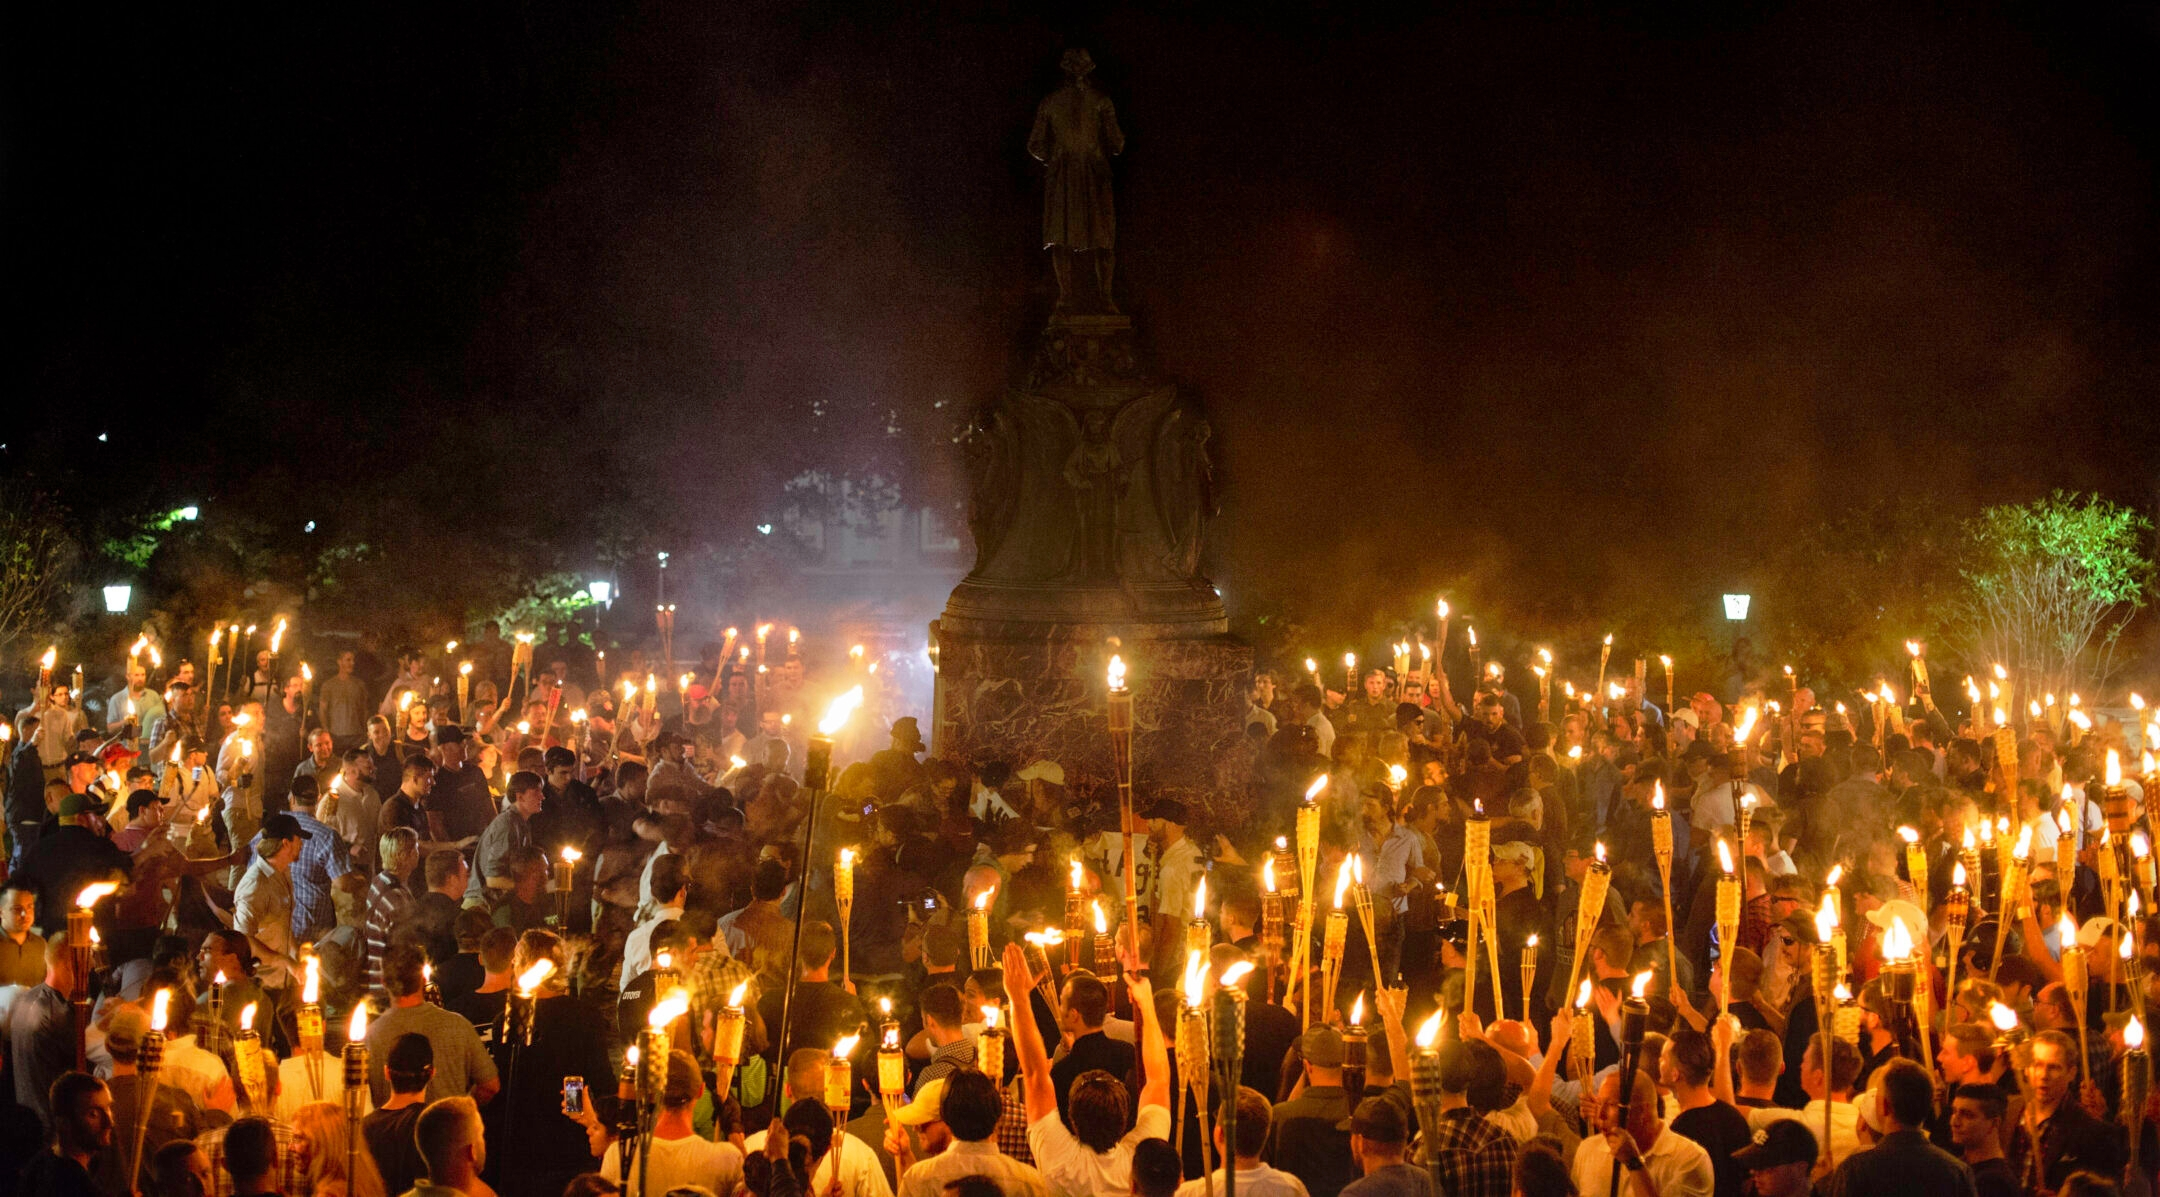 It's been 3 years since Charlottesville. We're suing to break the cycle of terror that...